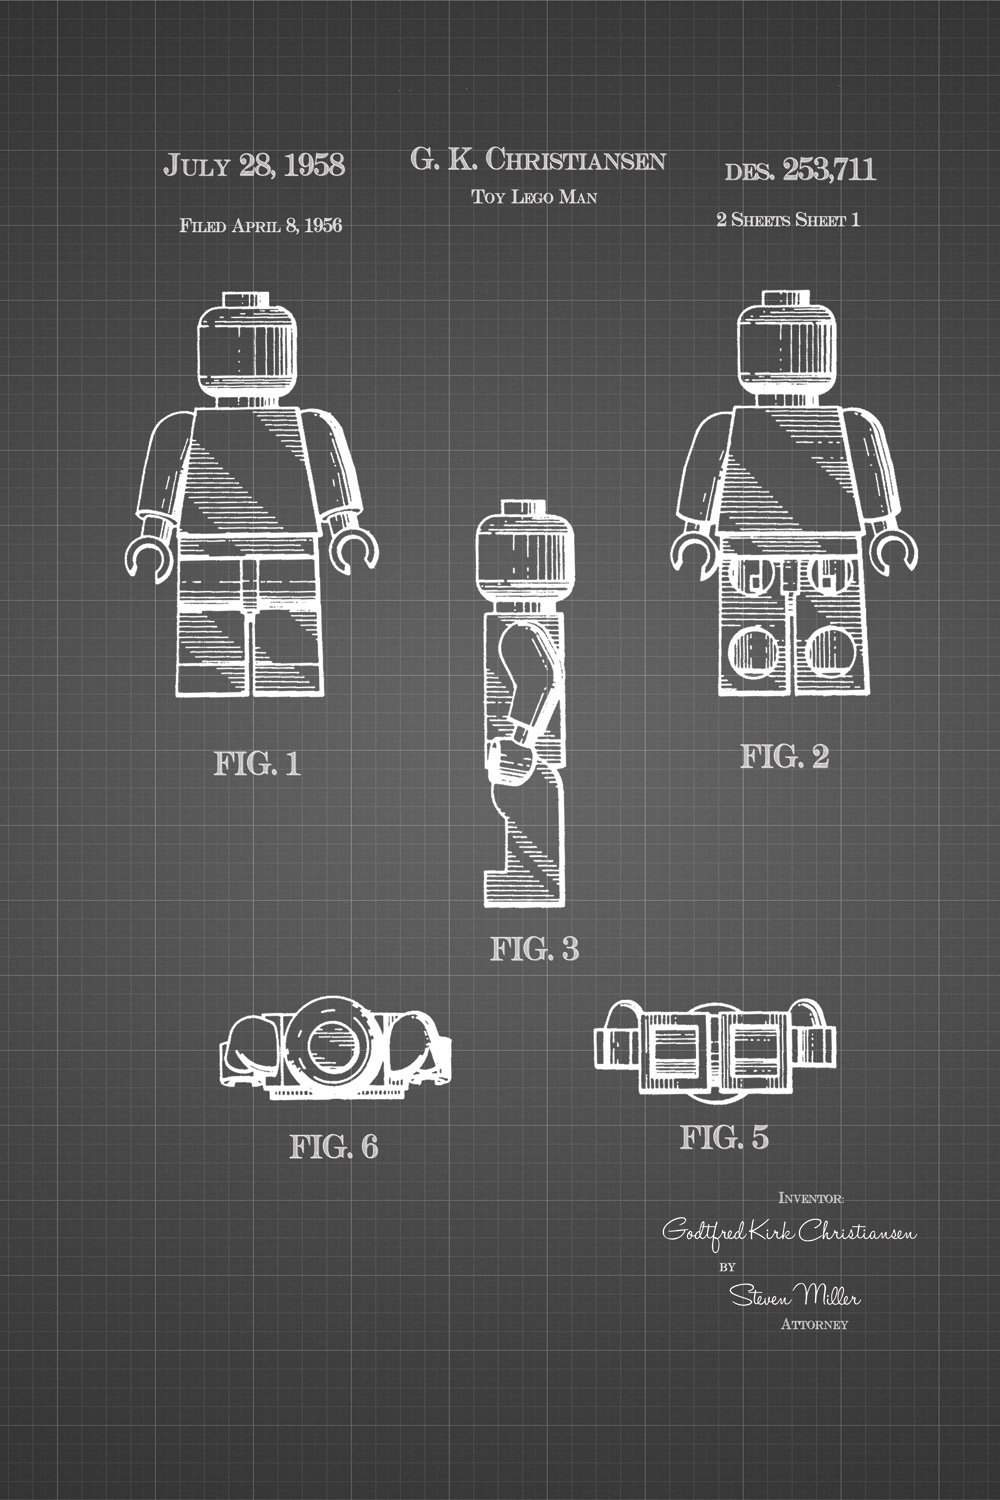 JP London Heavyweight Legoman Toy Prepasted Removable Vintage Black Grid Poster Patent Art at 36 in by 24 in SPMURJSGLT11